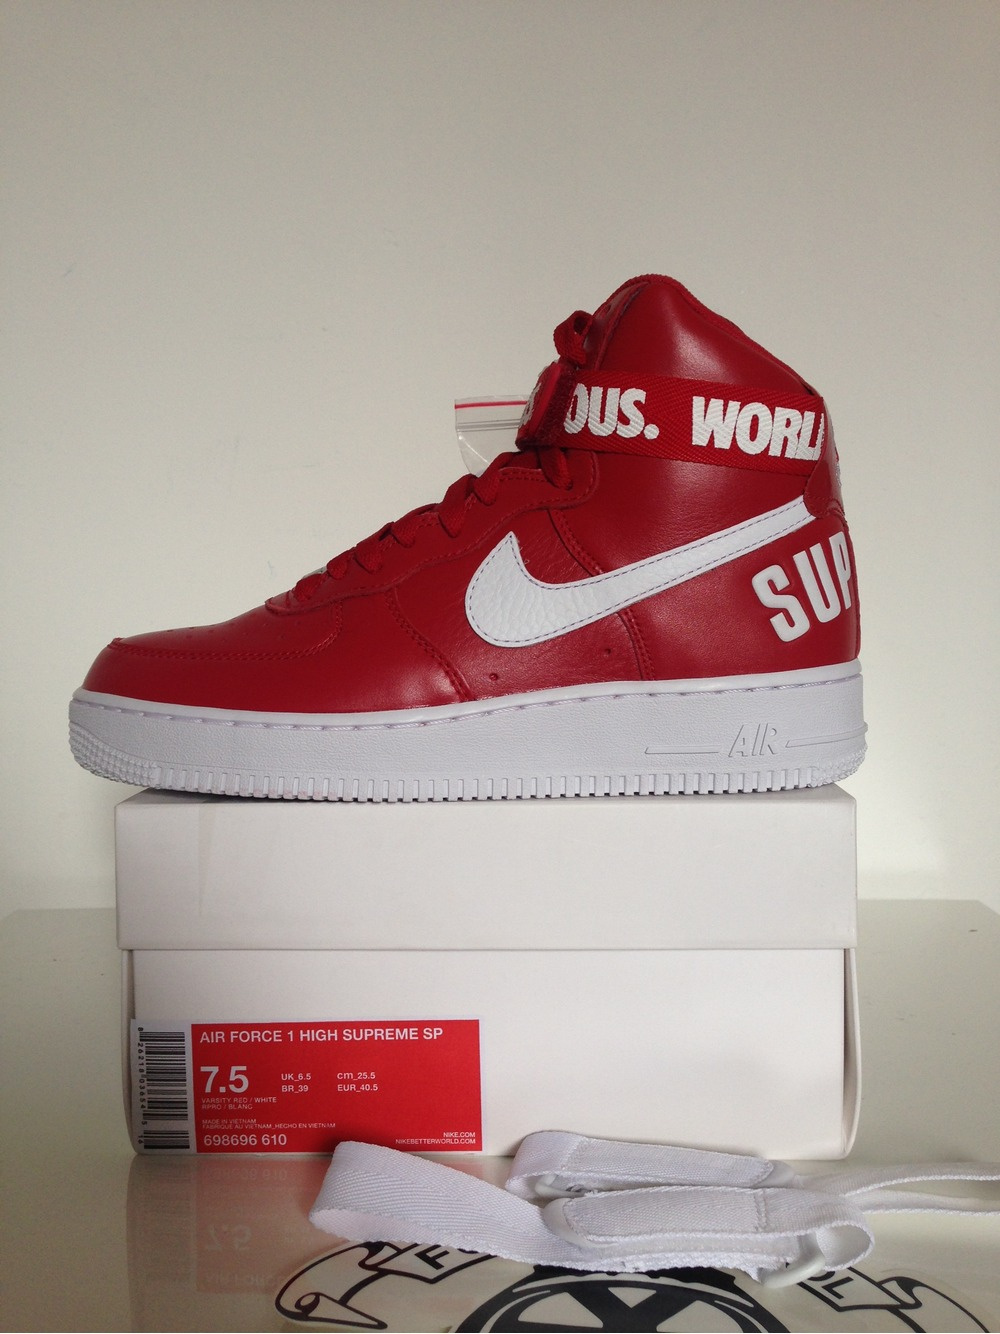 Nike Air Force 1 Stars and Stripes Flag with lace swap 6 18 14